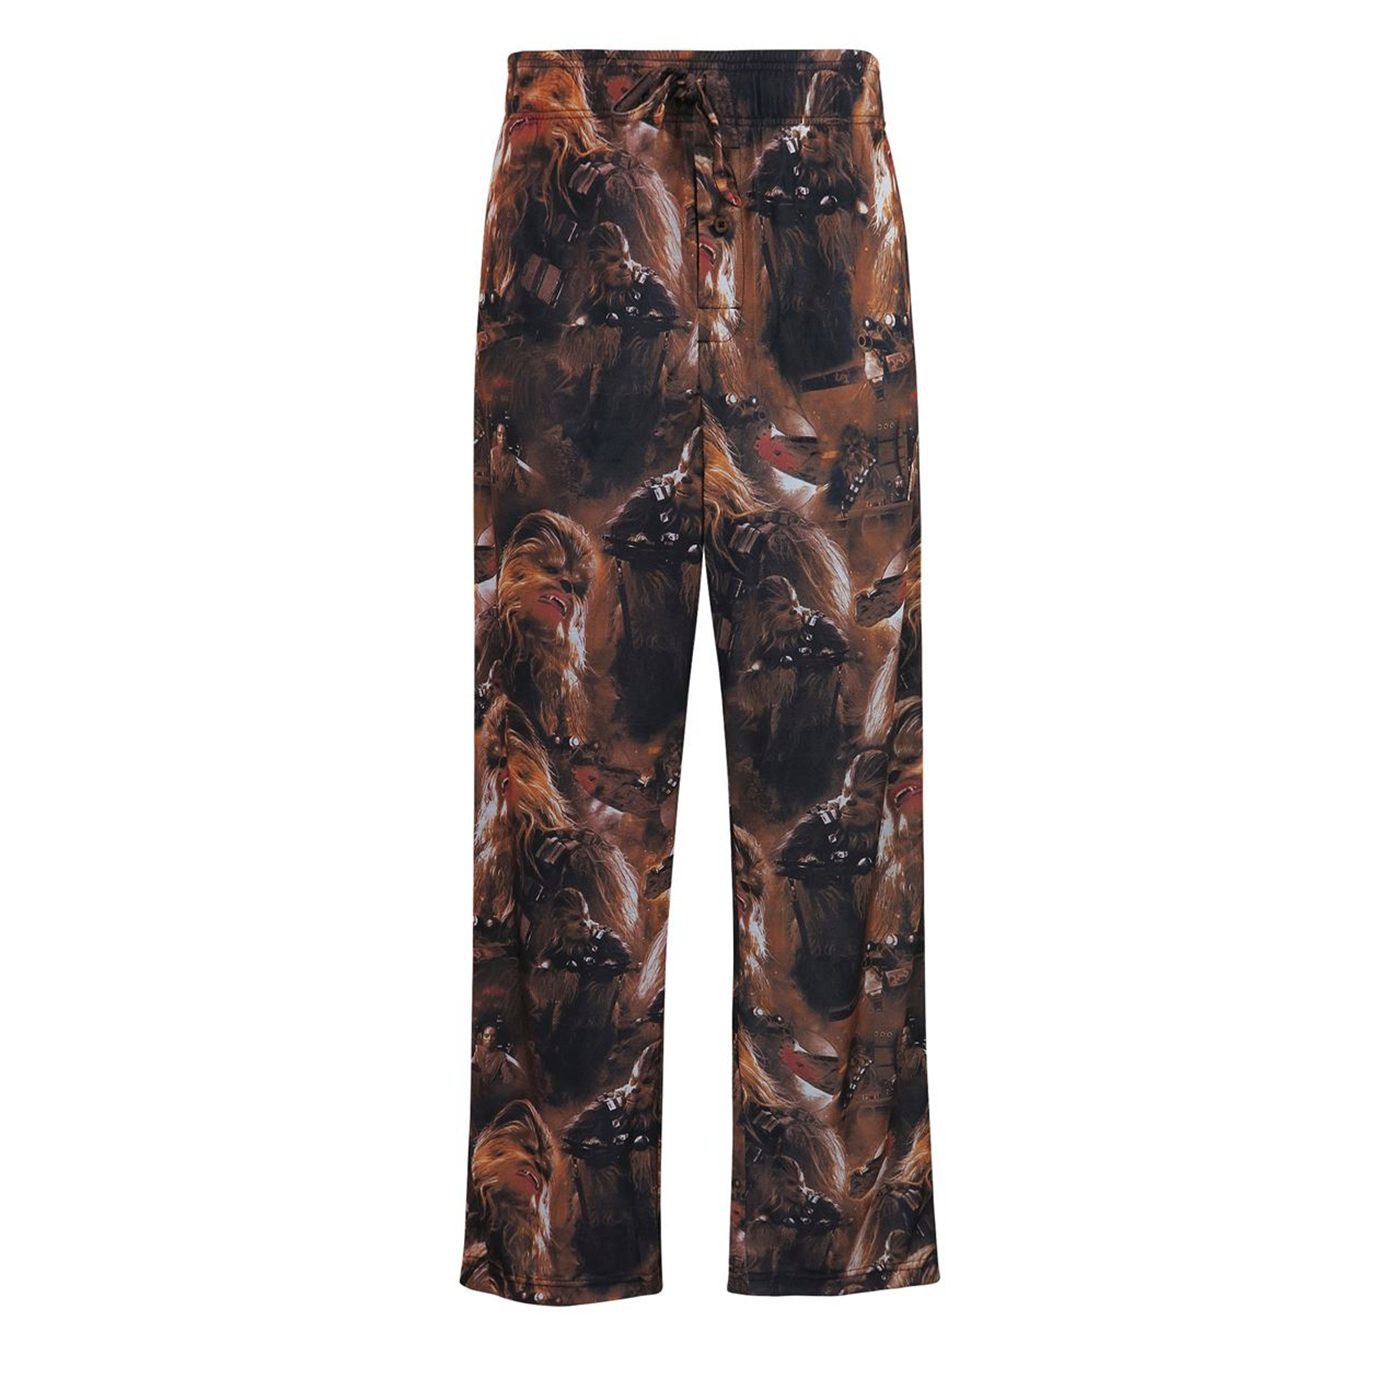 Star Wars Chewbacca Rebel Action Men's Pajama Pants